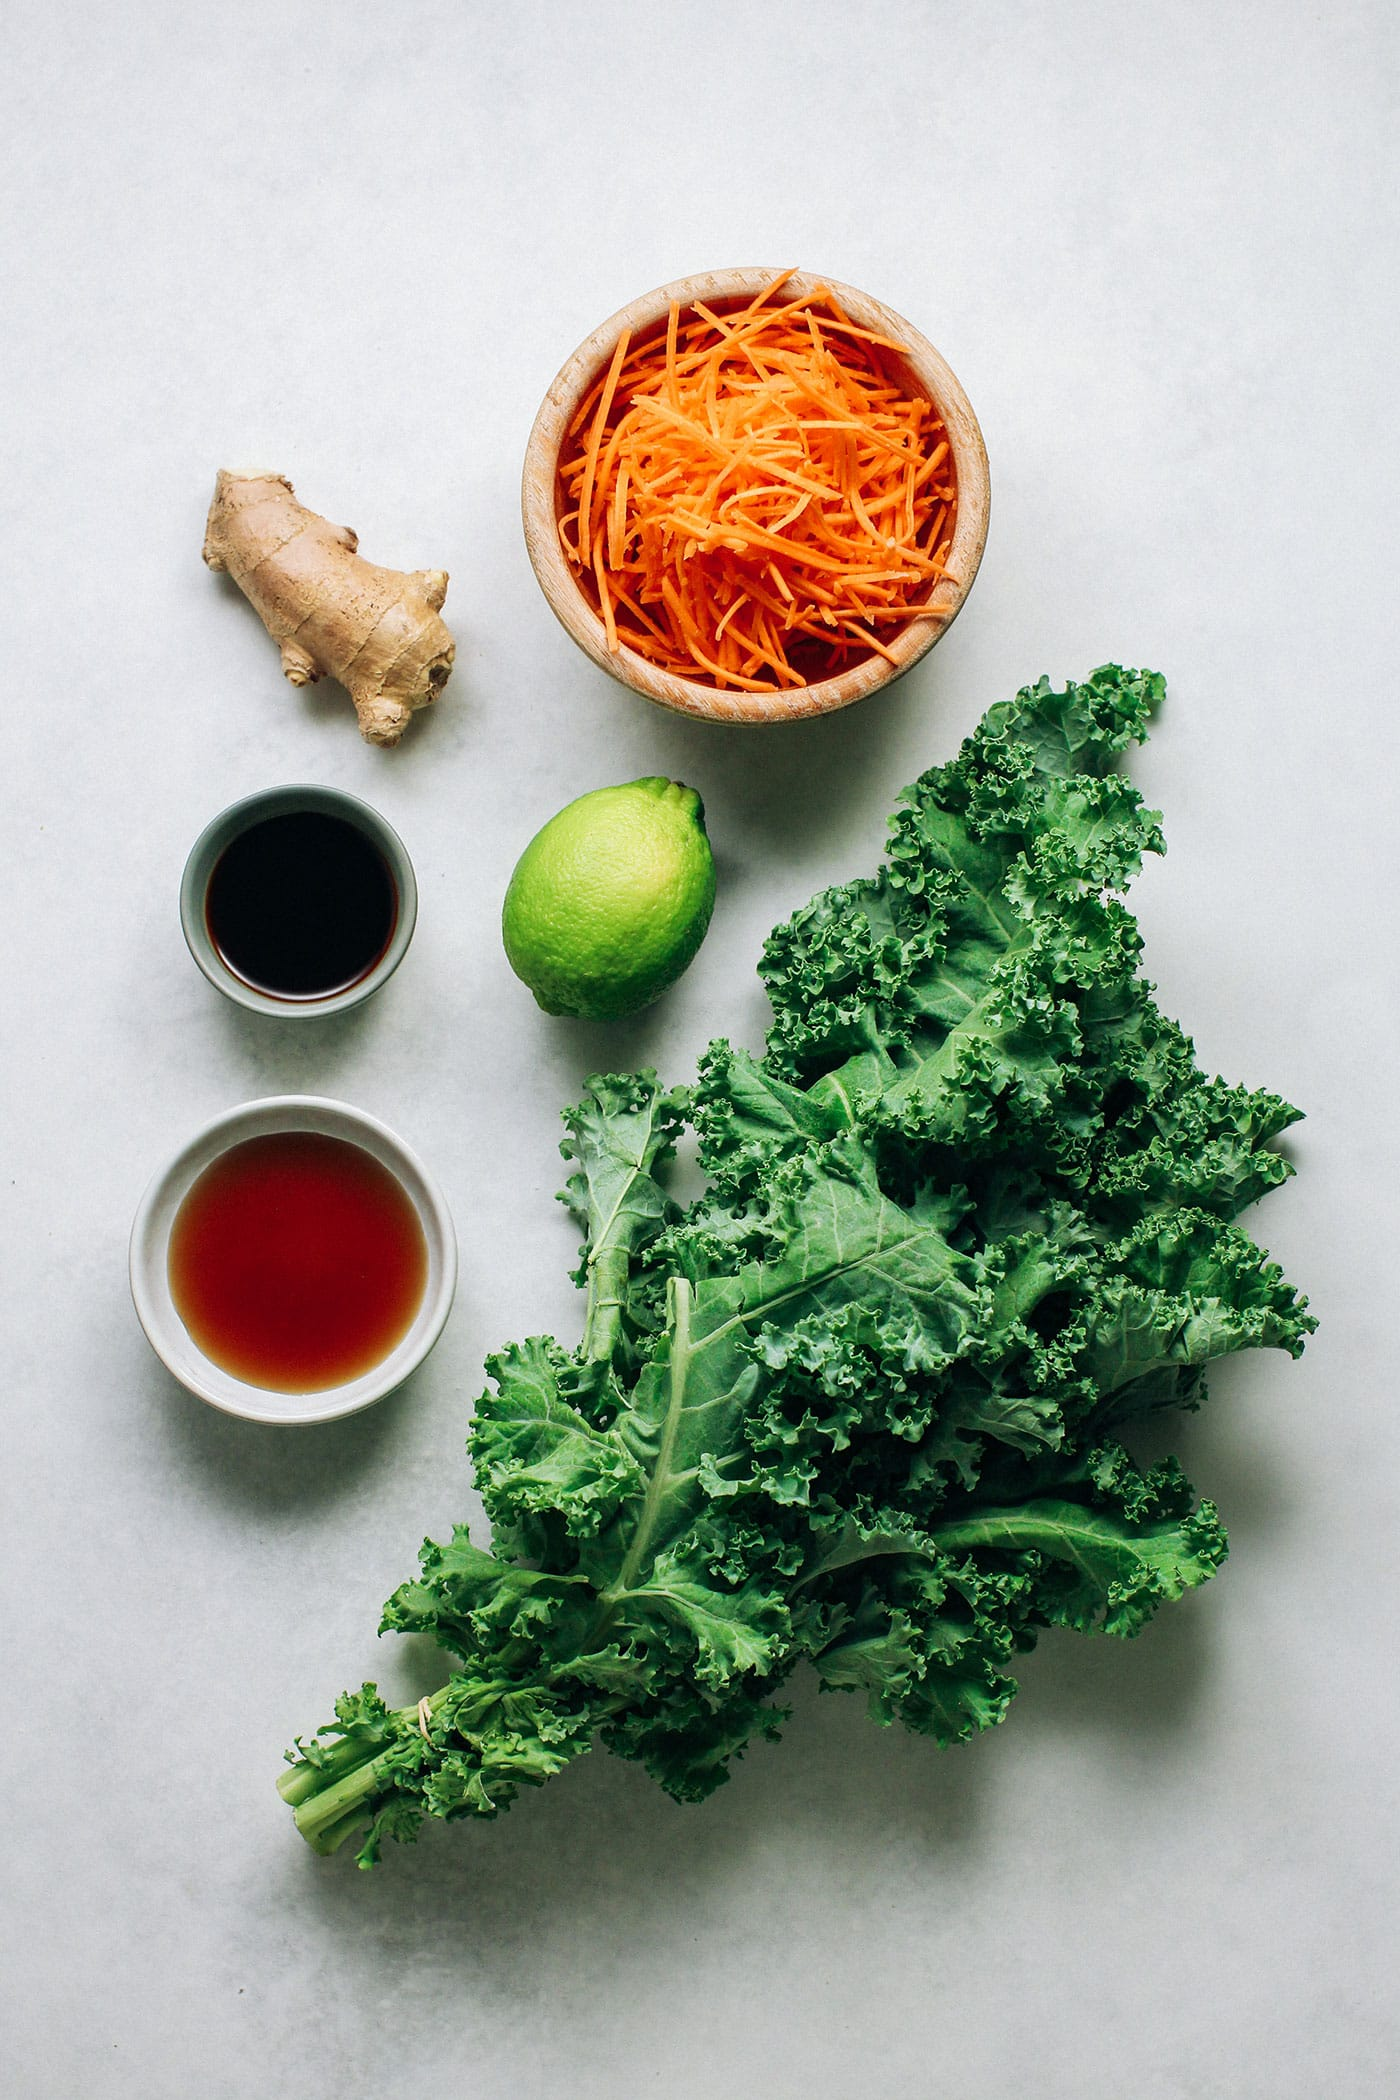 10-Minute Ginger Carrot & Kale Salad